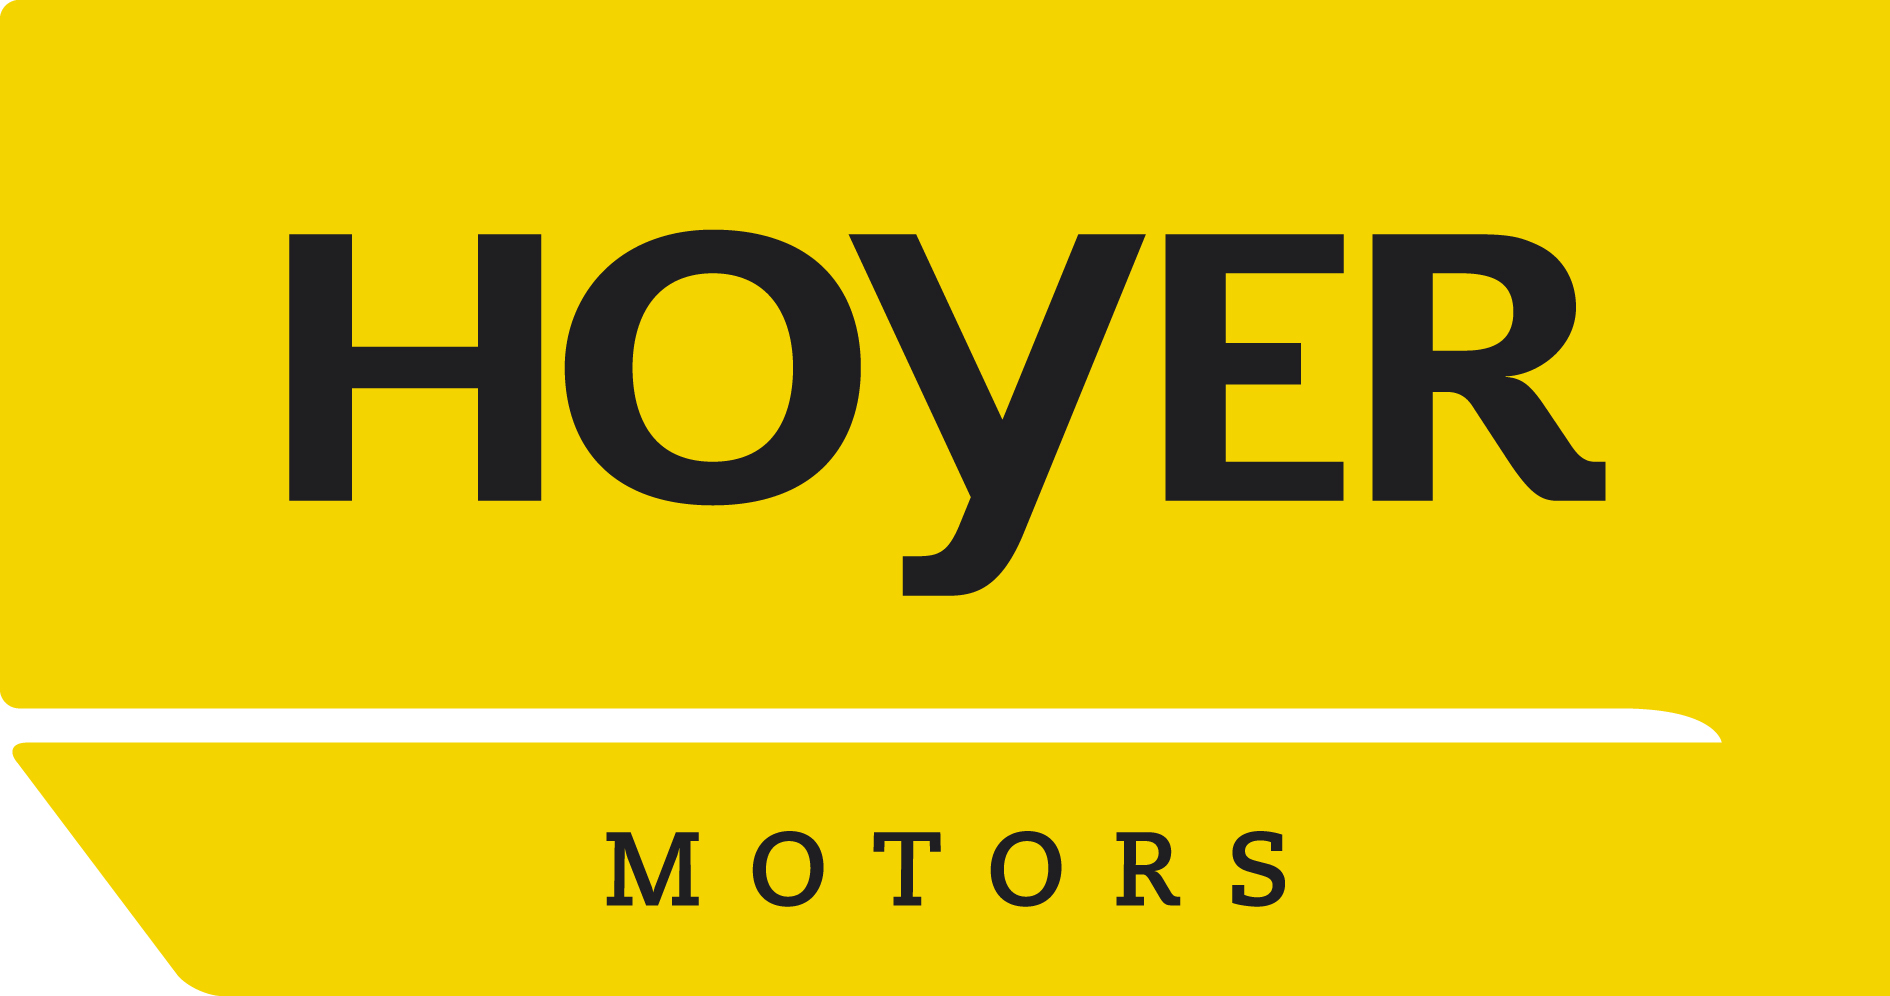 hoyer_motors_logobox_yellow.jpg